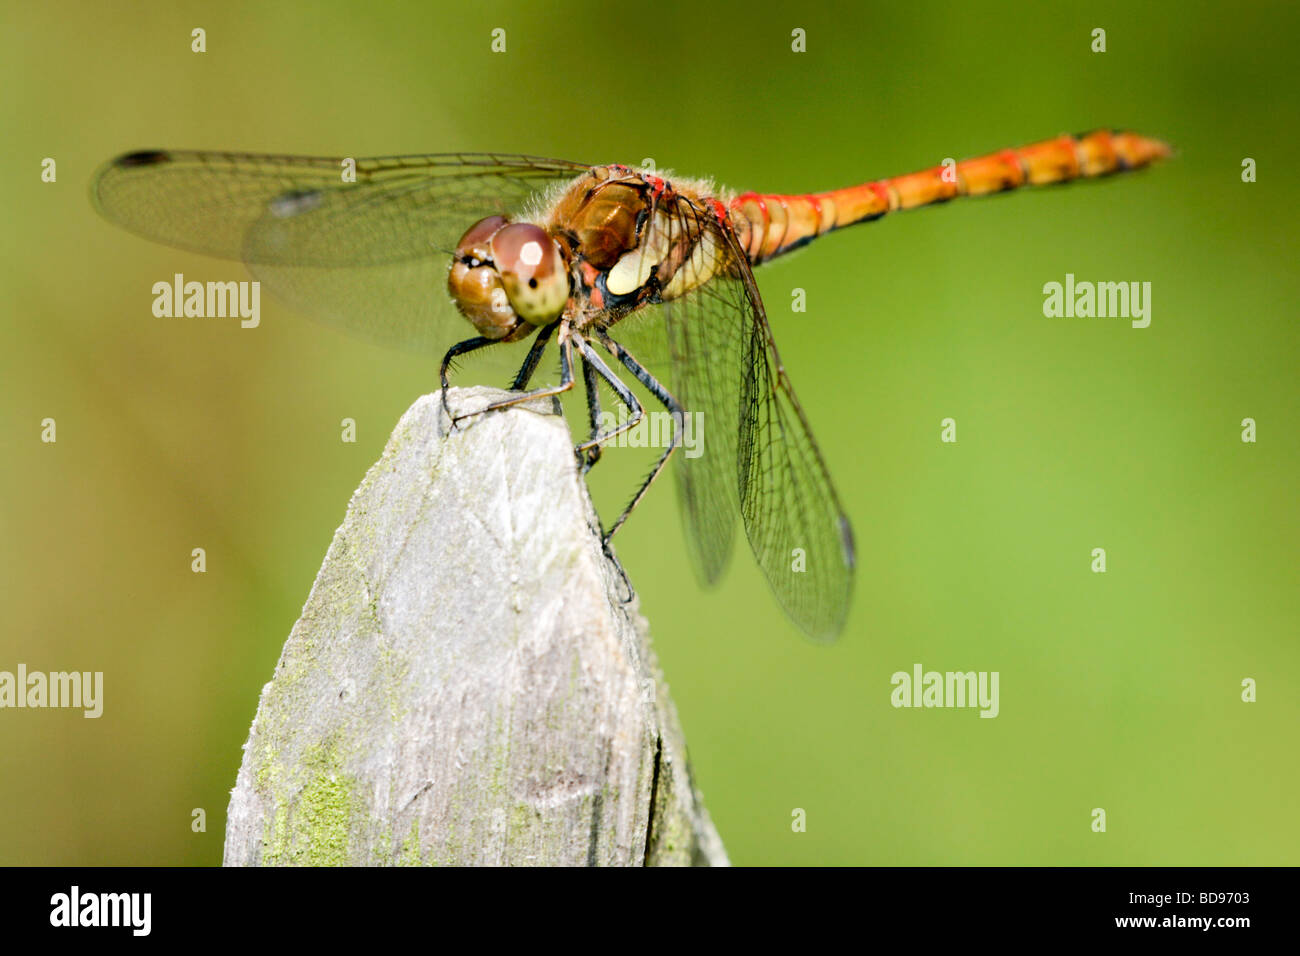 Close-up of the face of a brown and yellow dragonfly resting on a mossy fence post - Stock Image